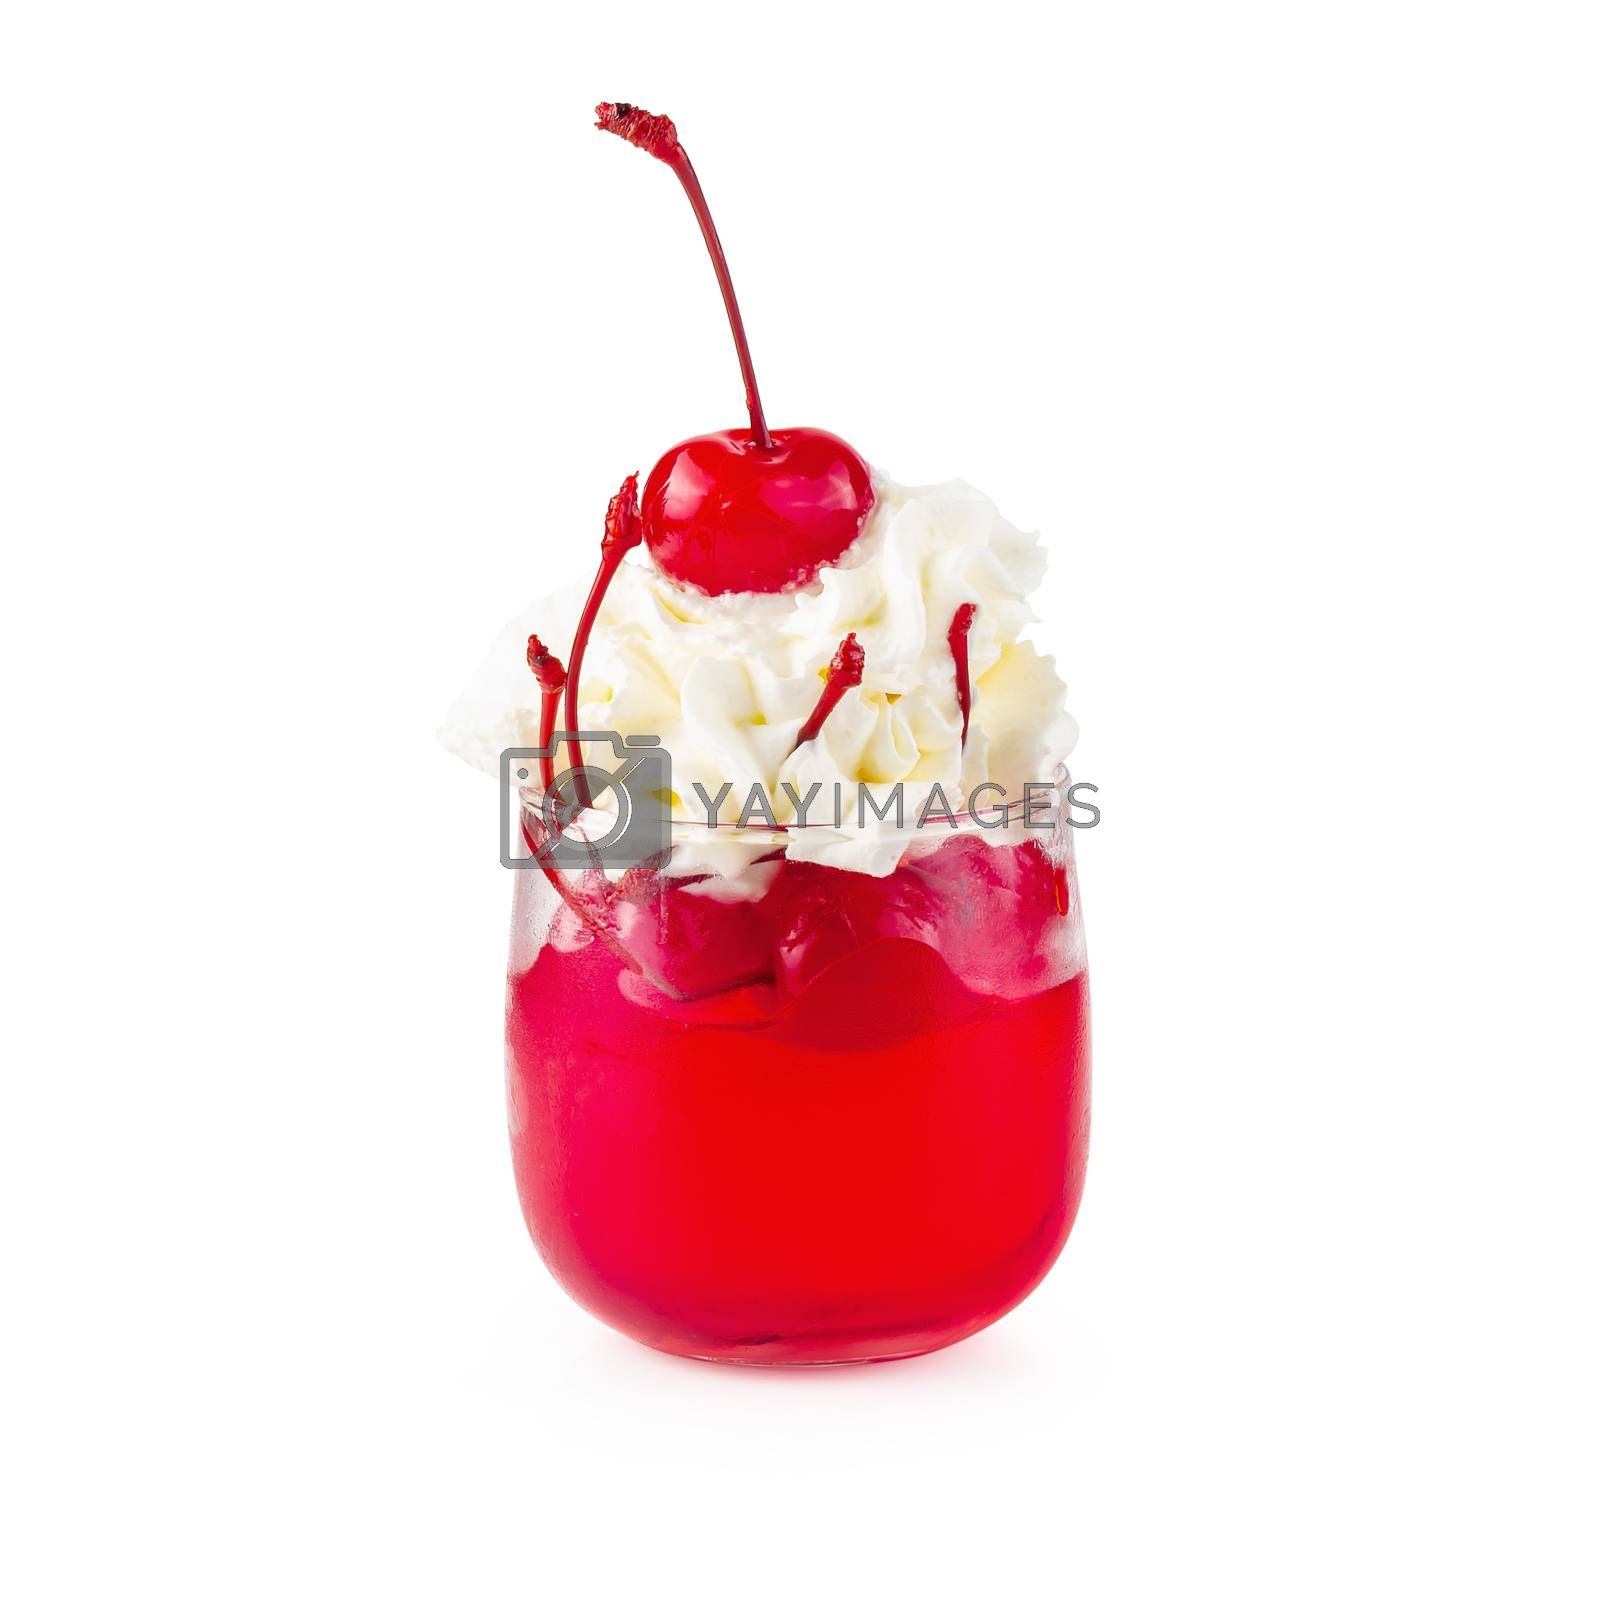 Strawberry jelly in a glass topping with cherries and whipped cream isolated on white background.